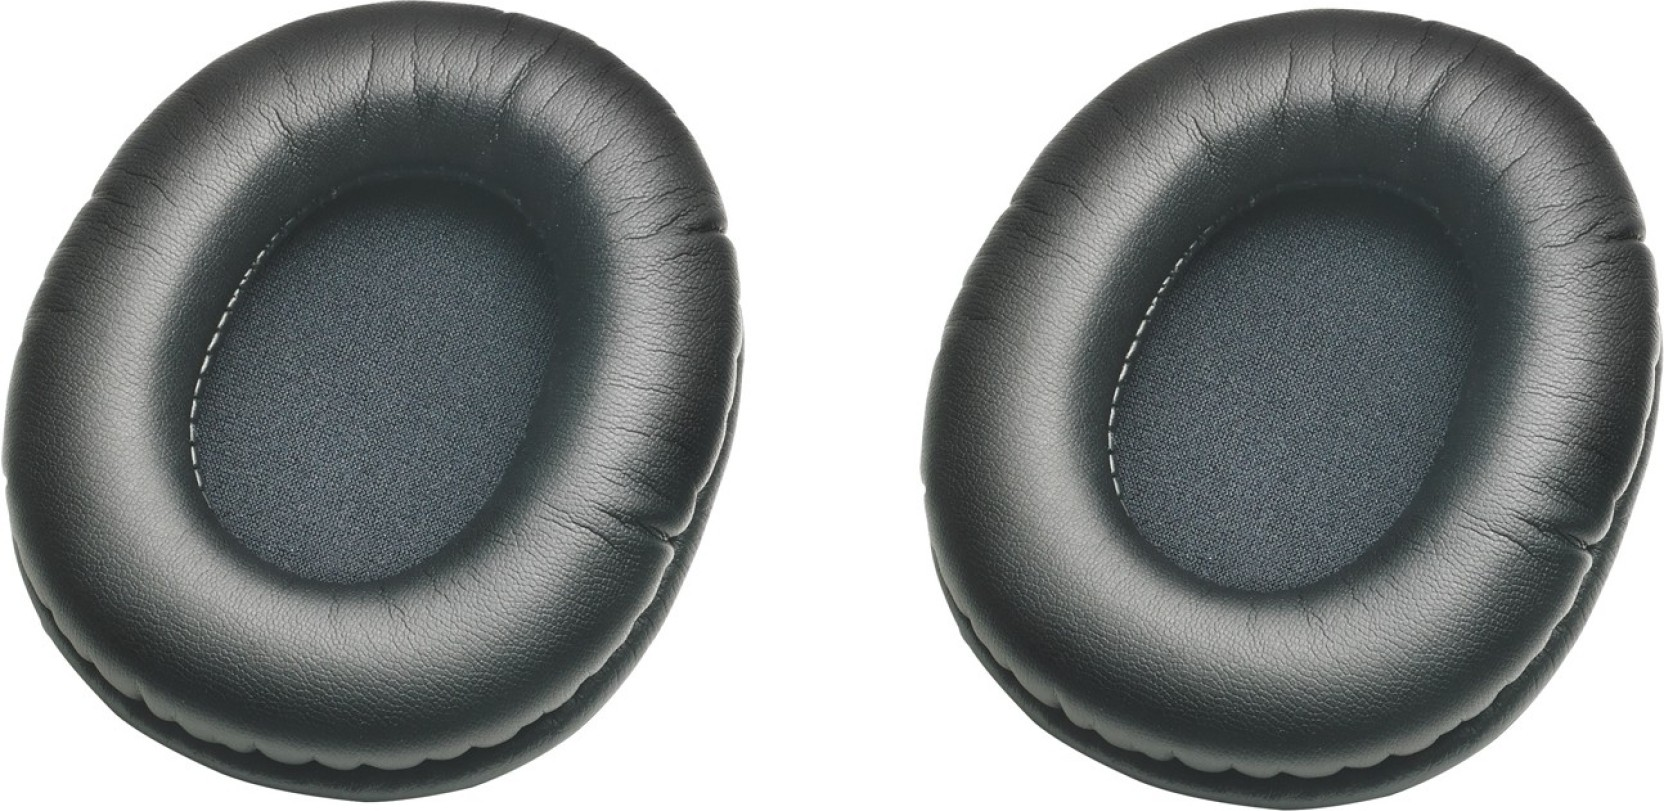 Audio Technica Ath M50x Bk Replacement Earpads Over The Ear M20x Black Headphone Cushion Share